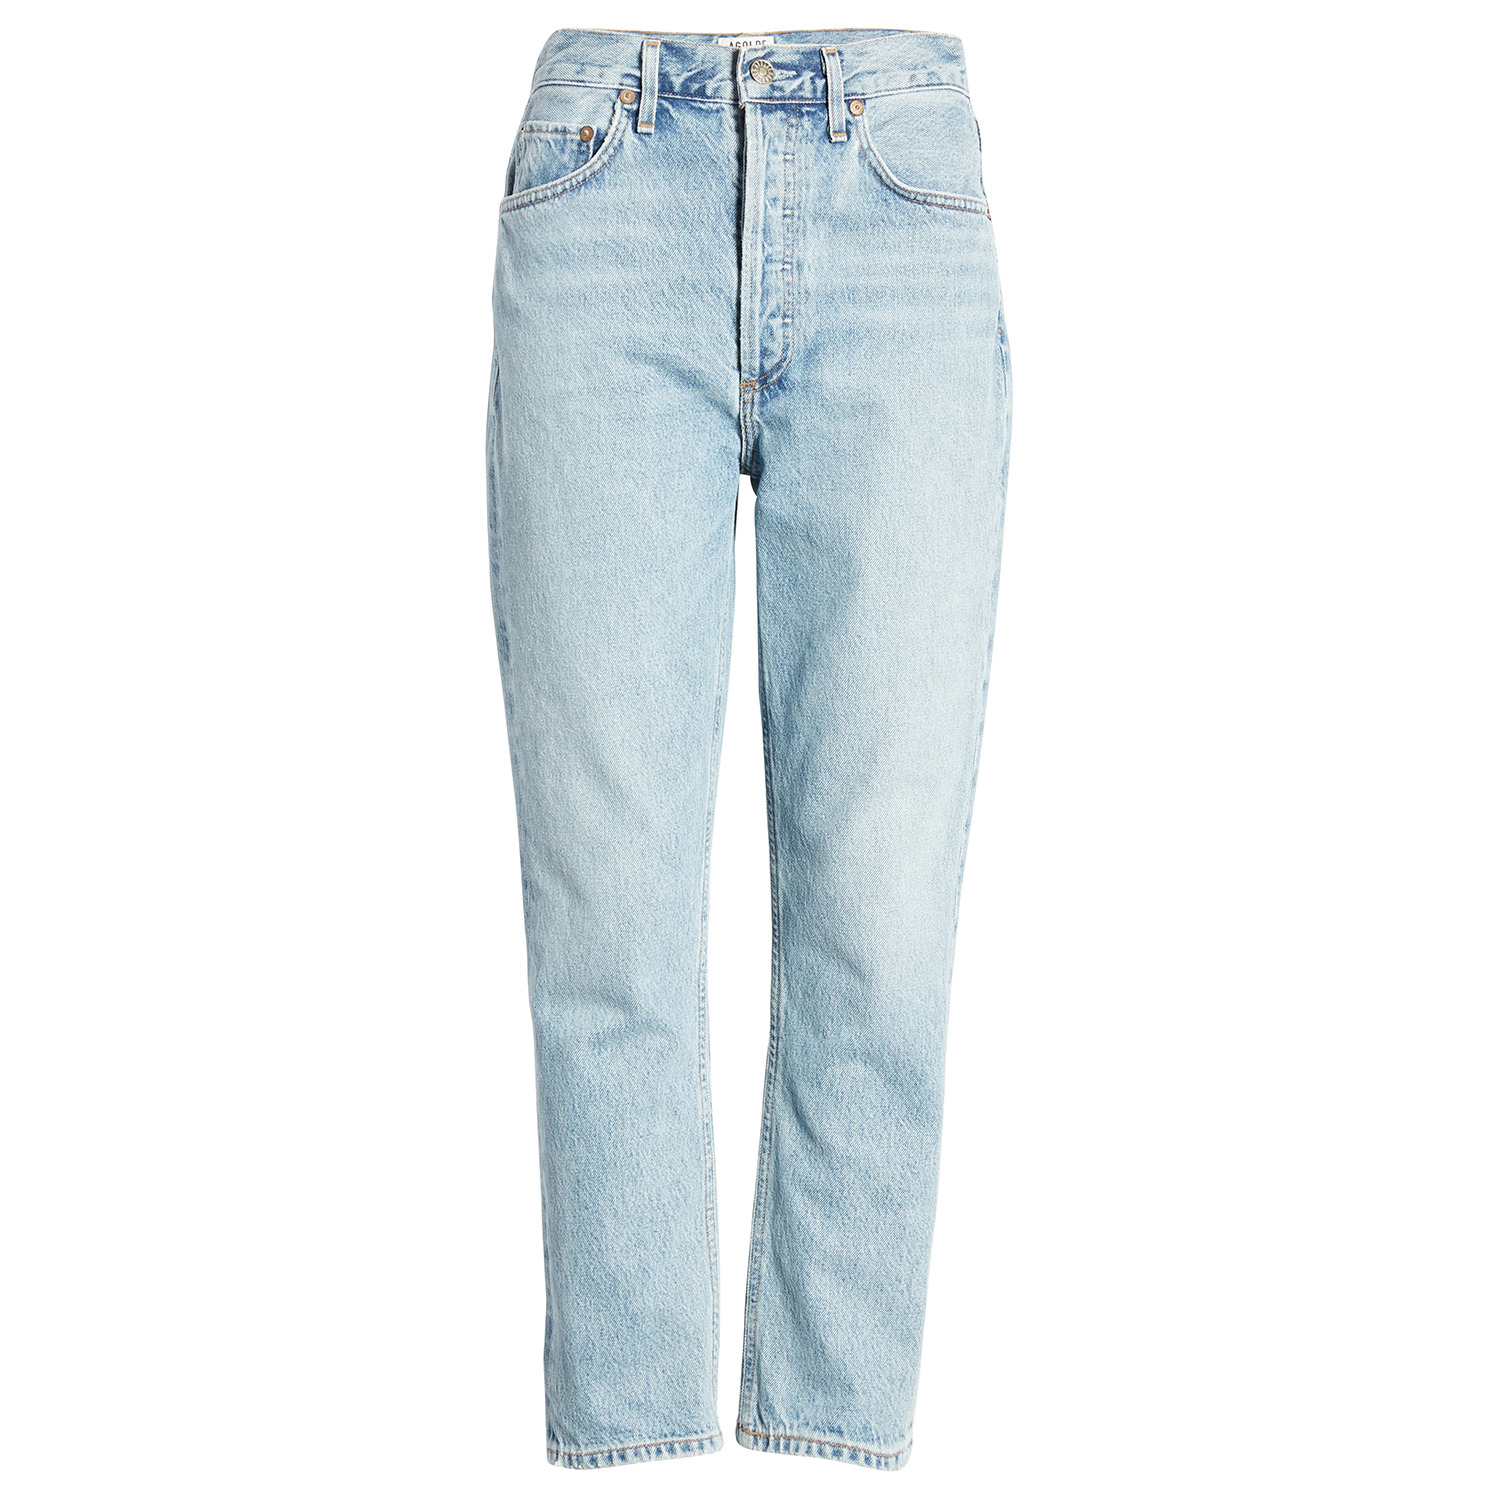 Citizens of Humanity Emerson High Waist Slim Boyfriend Jeans